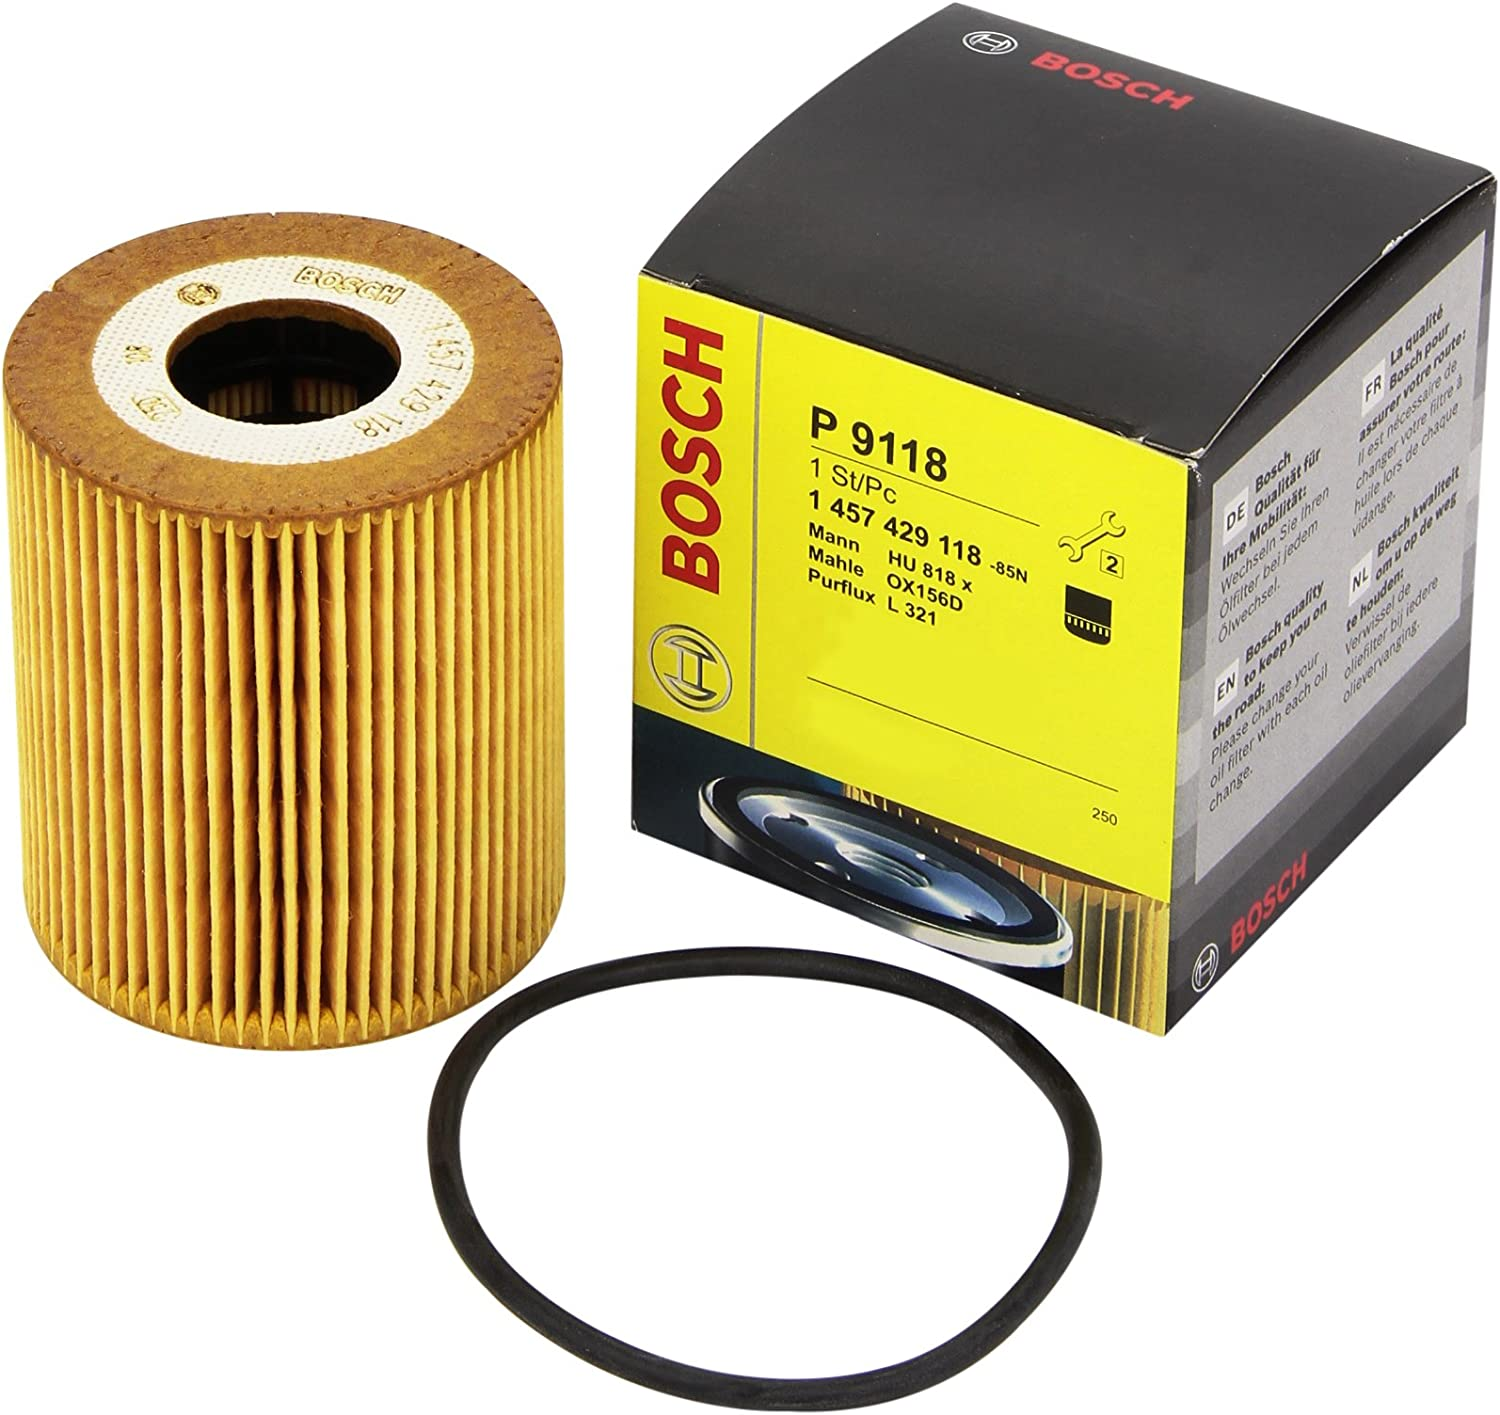 Land Rover Range Rover 2002-2012 Mk III Mann Engine Replacement Oil Filter